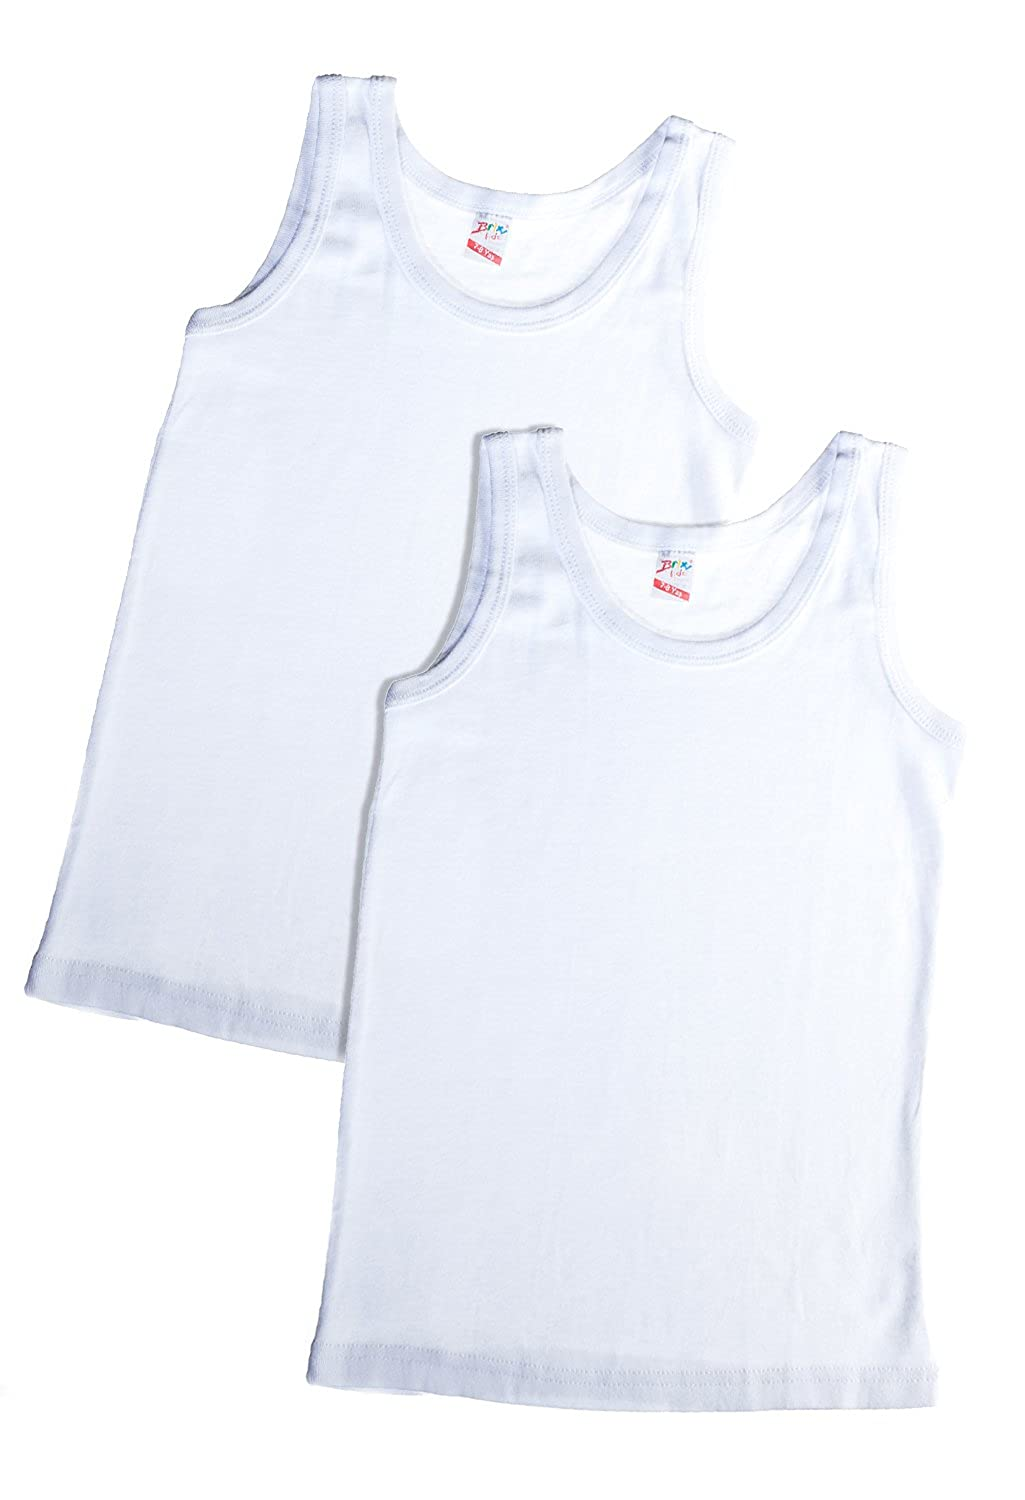 Brix Boys White Tank Tops 100% Cotton Super Soft Undershirts 2 pk tees.